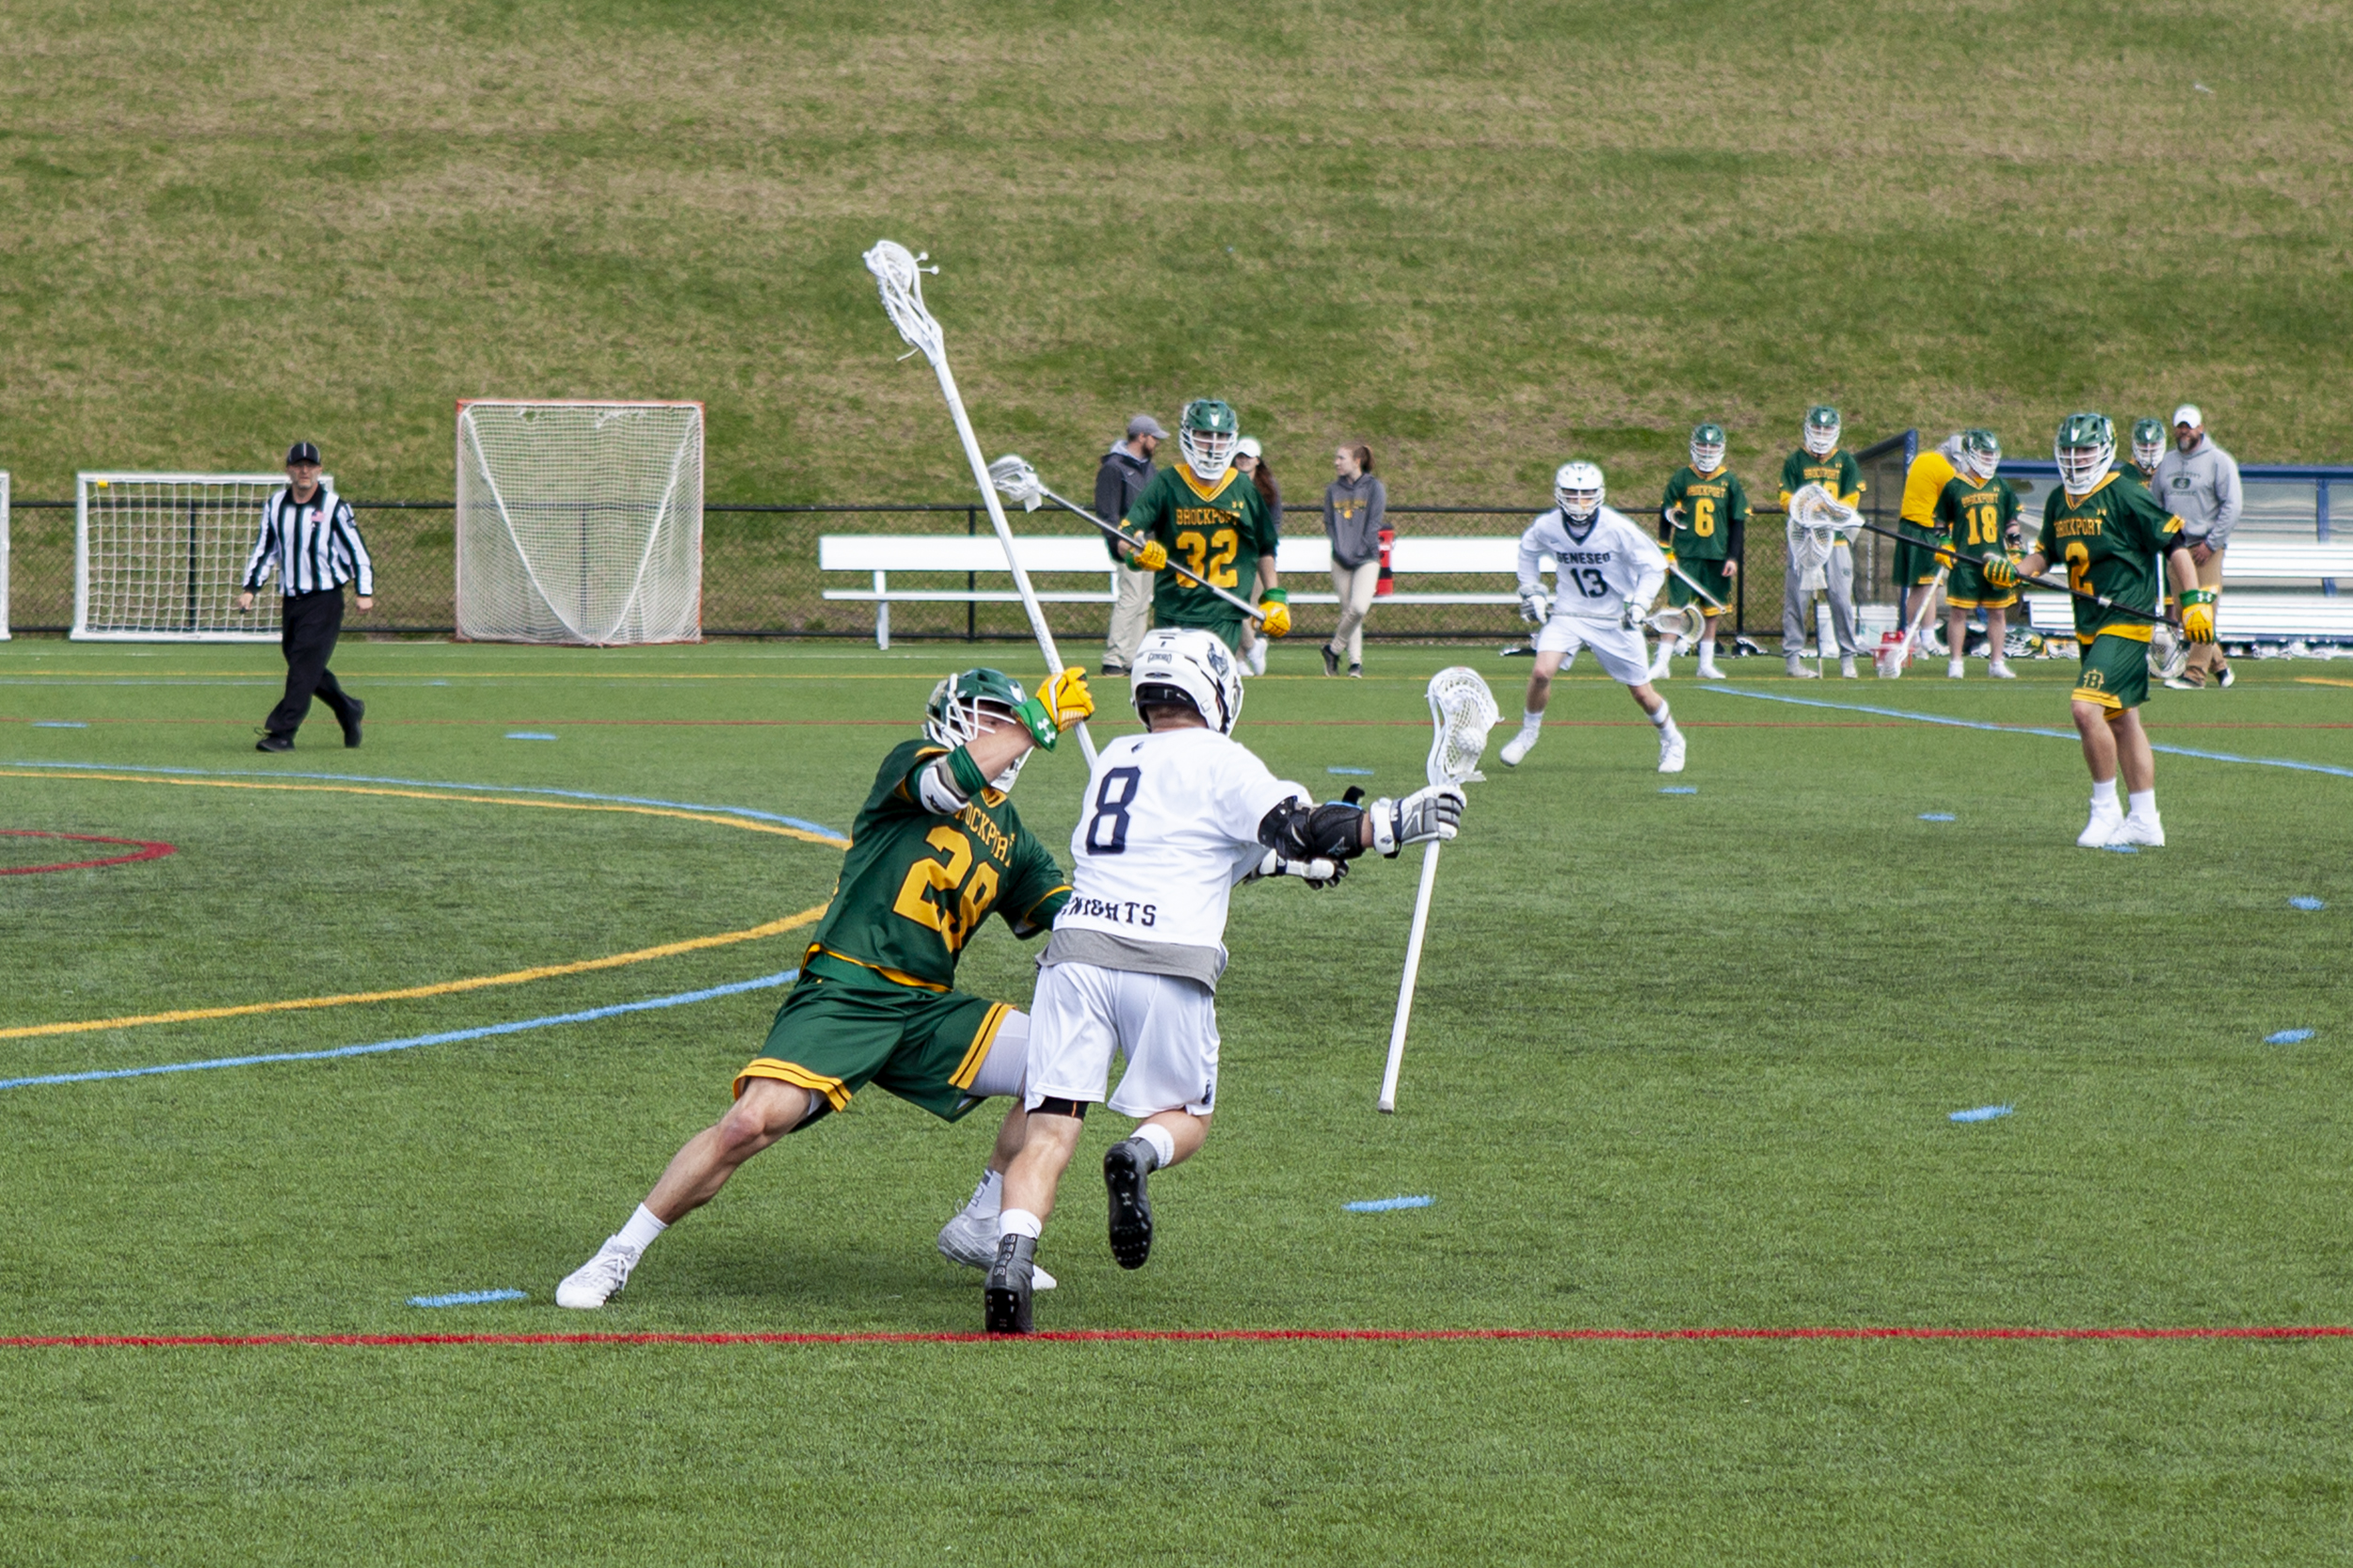 Sophomore midfielder James Pratt (pictured above) makes a move around a SUNY Brockport defender. Pratt had two goals and one assist in the 12-5 victory over Brockport (Udeshi Seneviratne/Photo Editor).